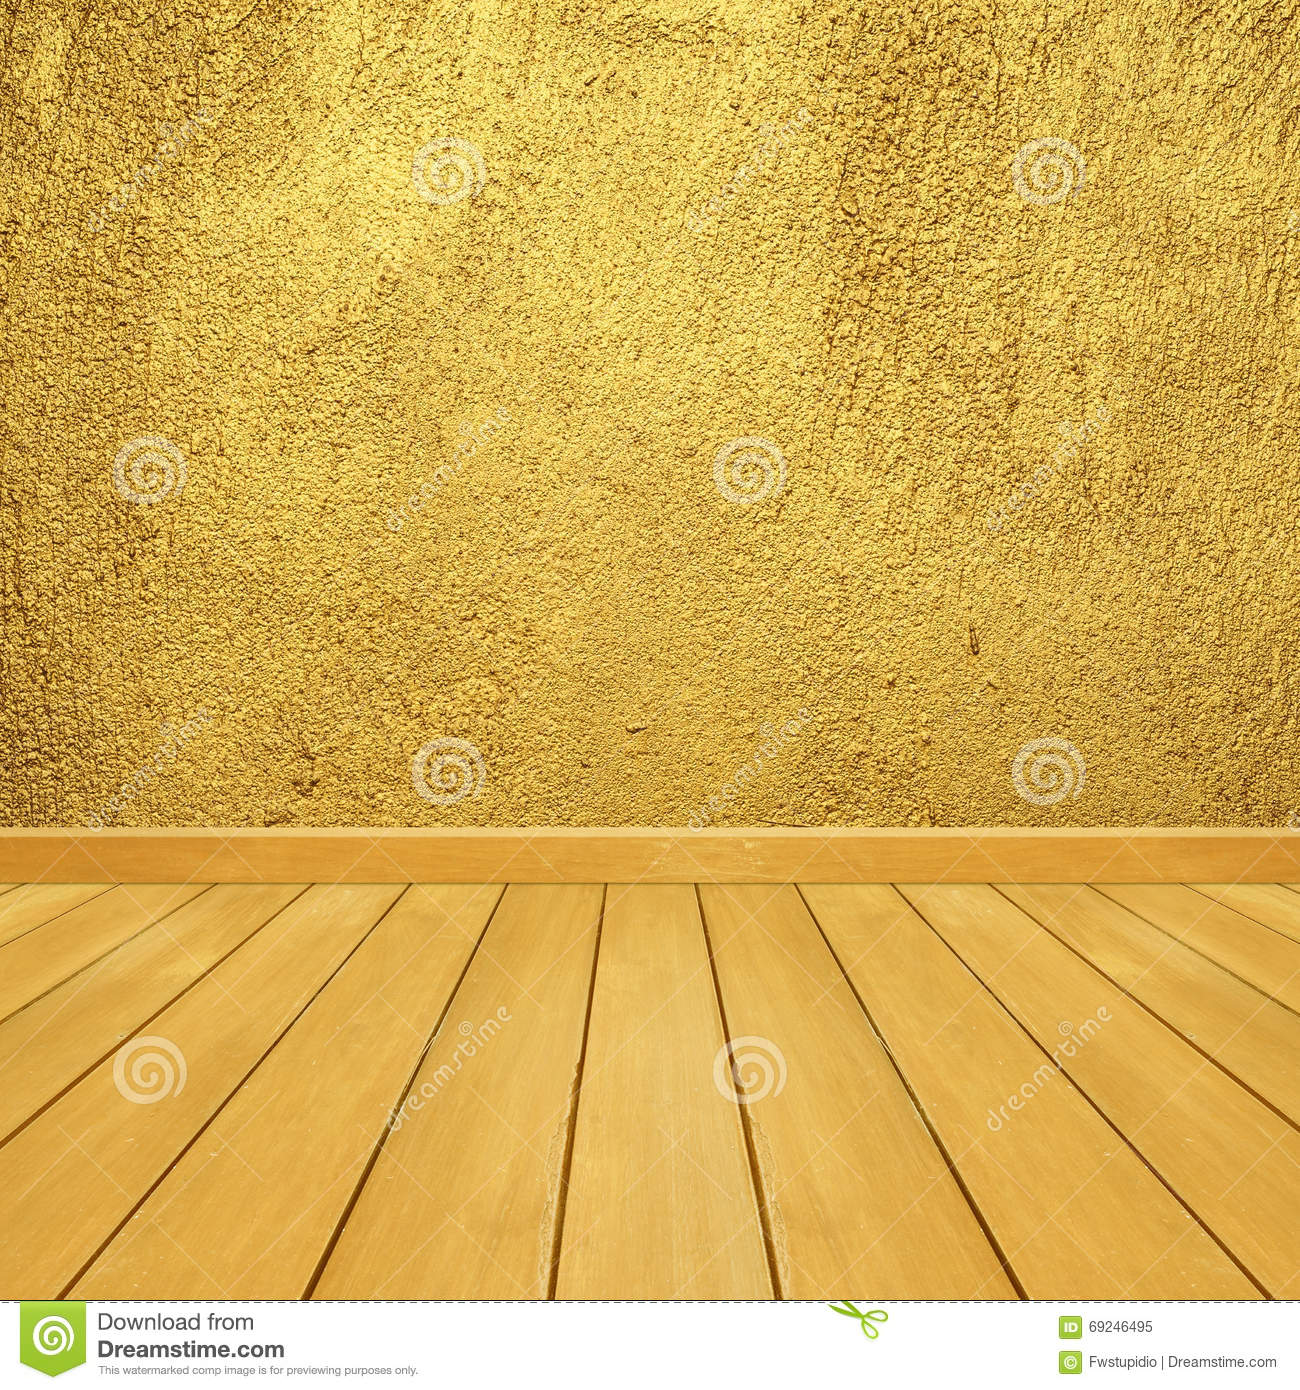 Golden Concrete Walls And Wood Floor For Text And Background.Copy ...